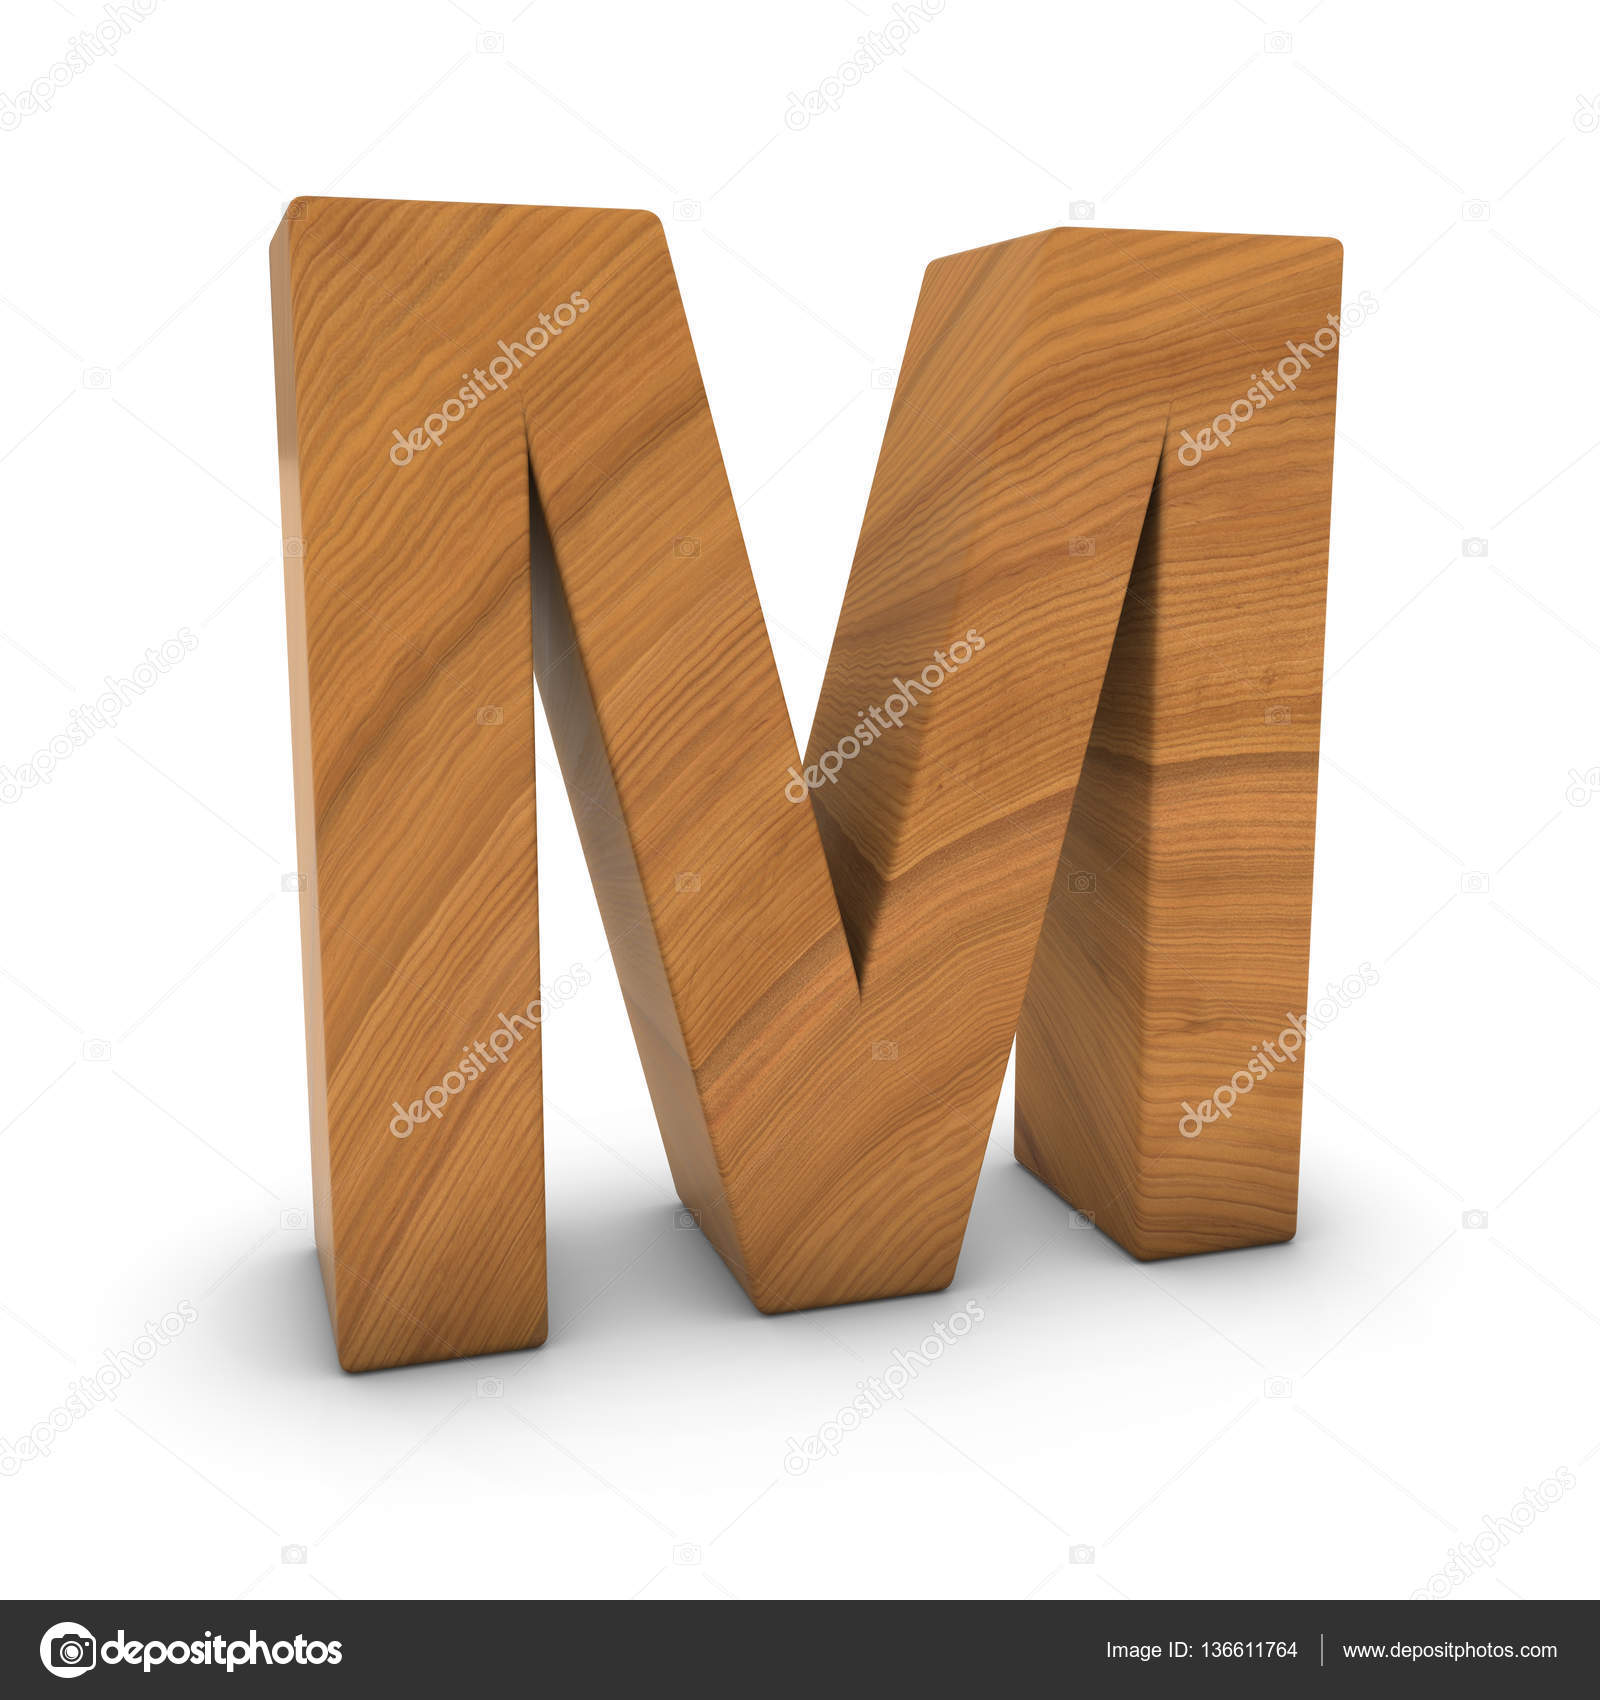 wooden letter m isolated on white with shadows 3d illustration stock photo